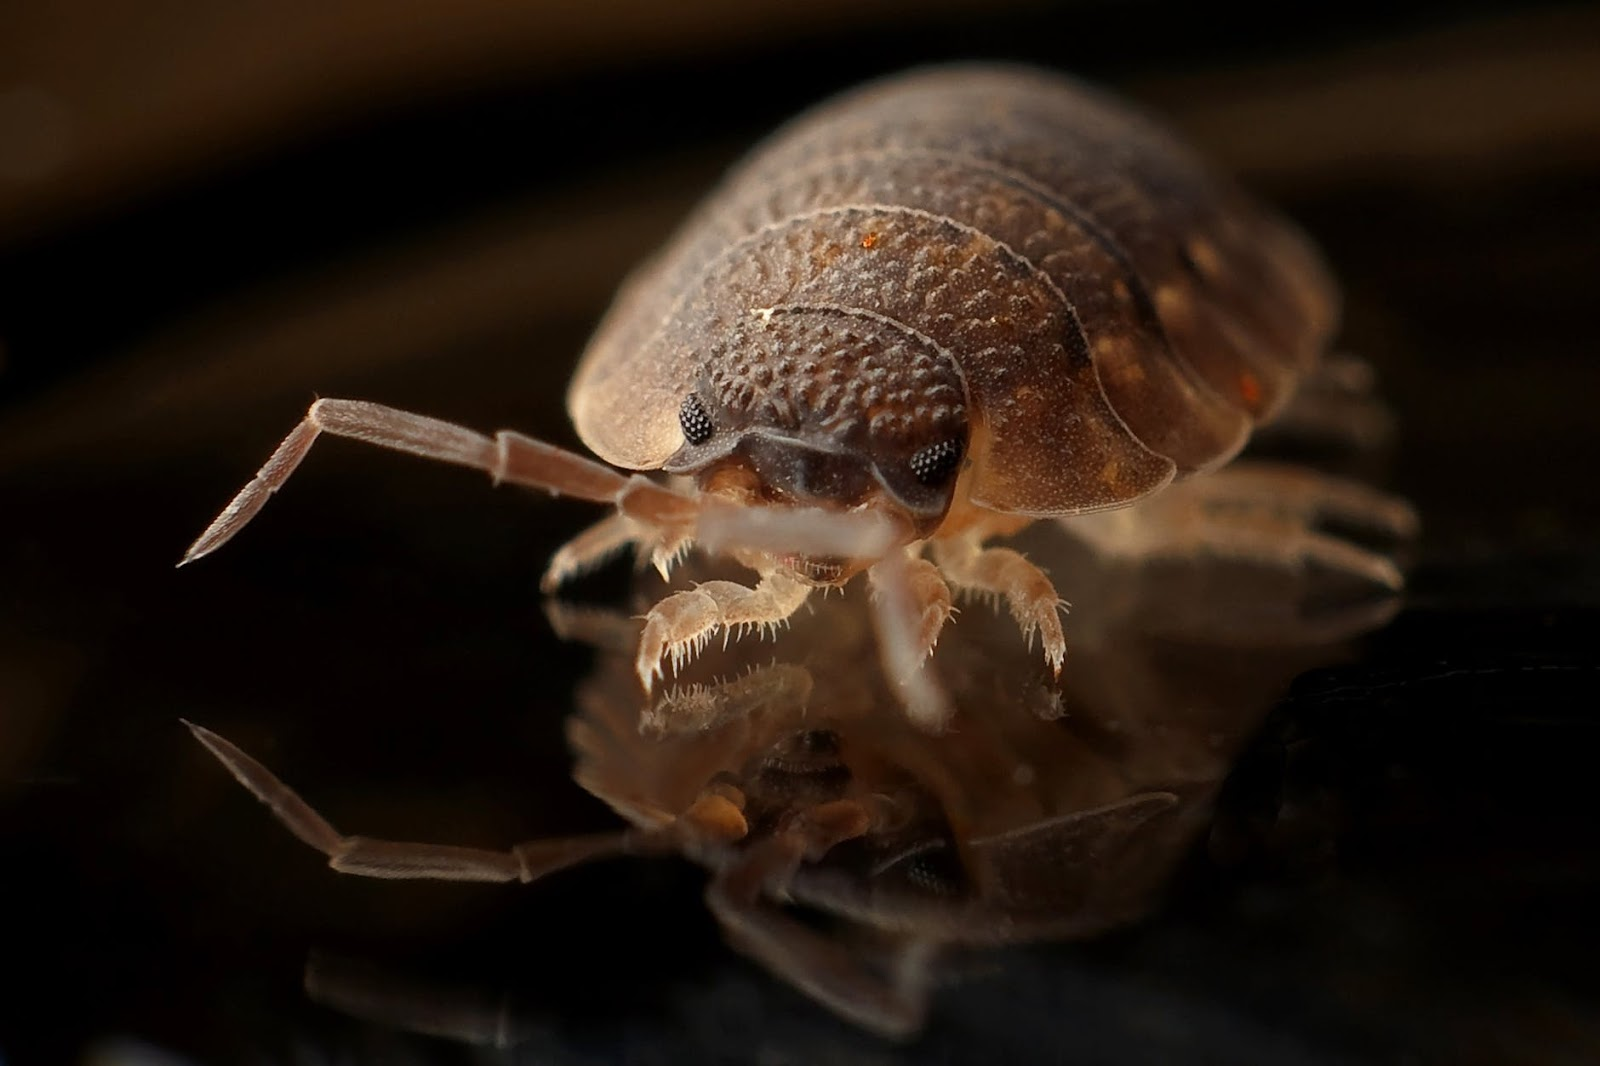 stop bed bugs in indianapolis indiana with heat treatment solutions